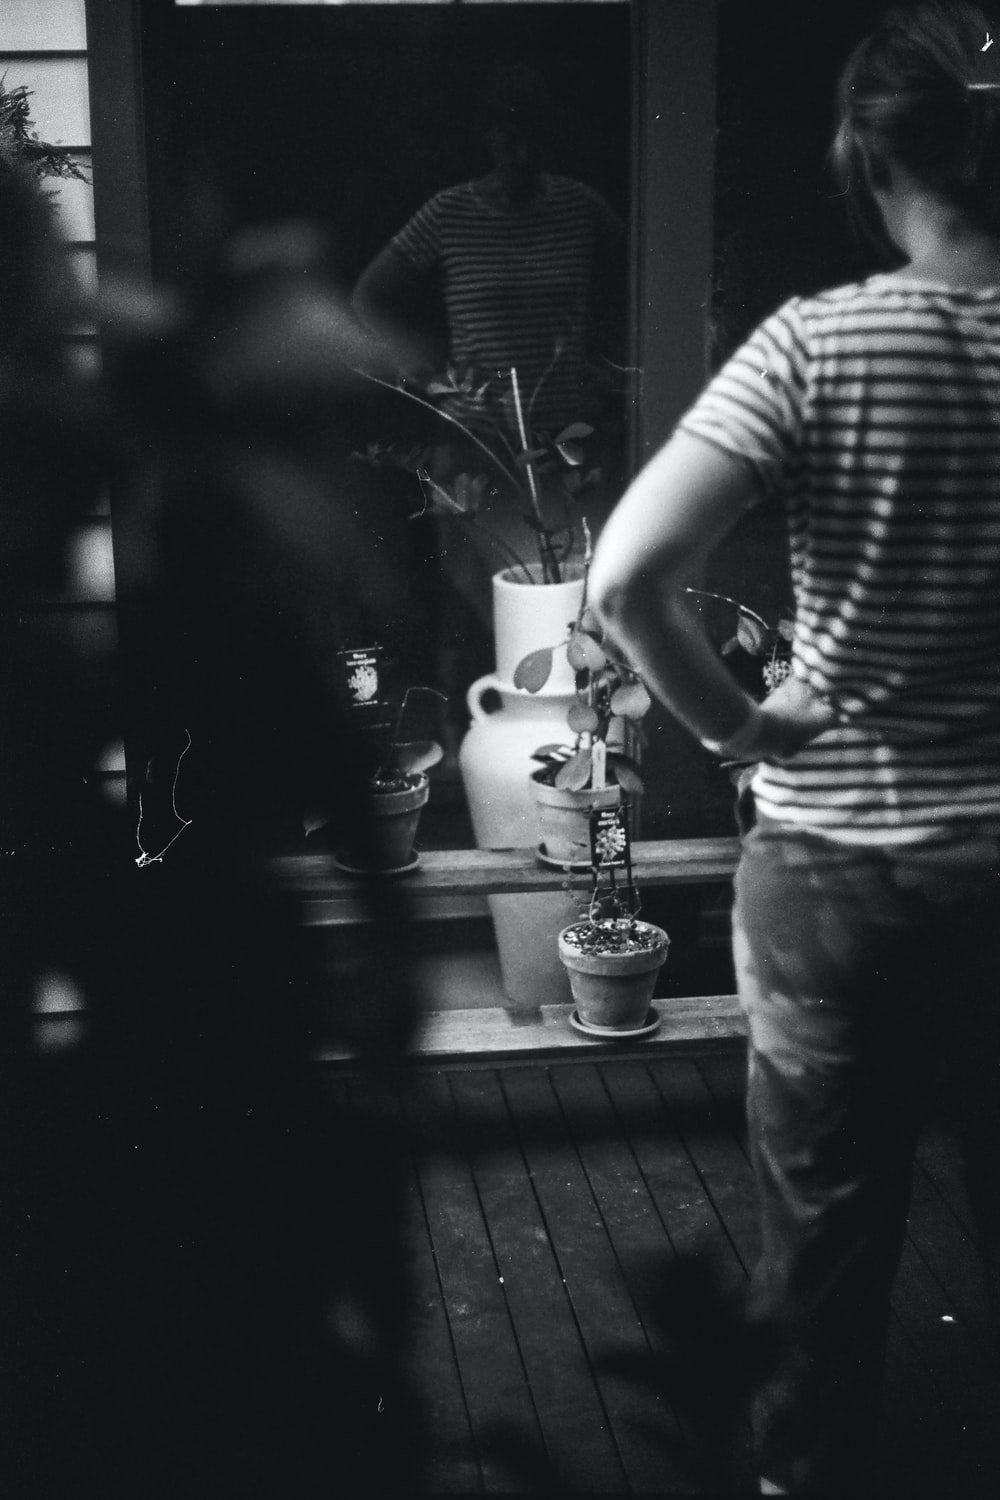 man in stripe shirt and black pants standing in front of window